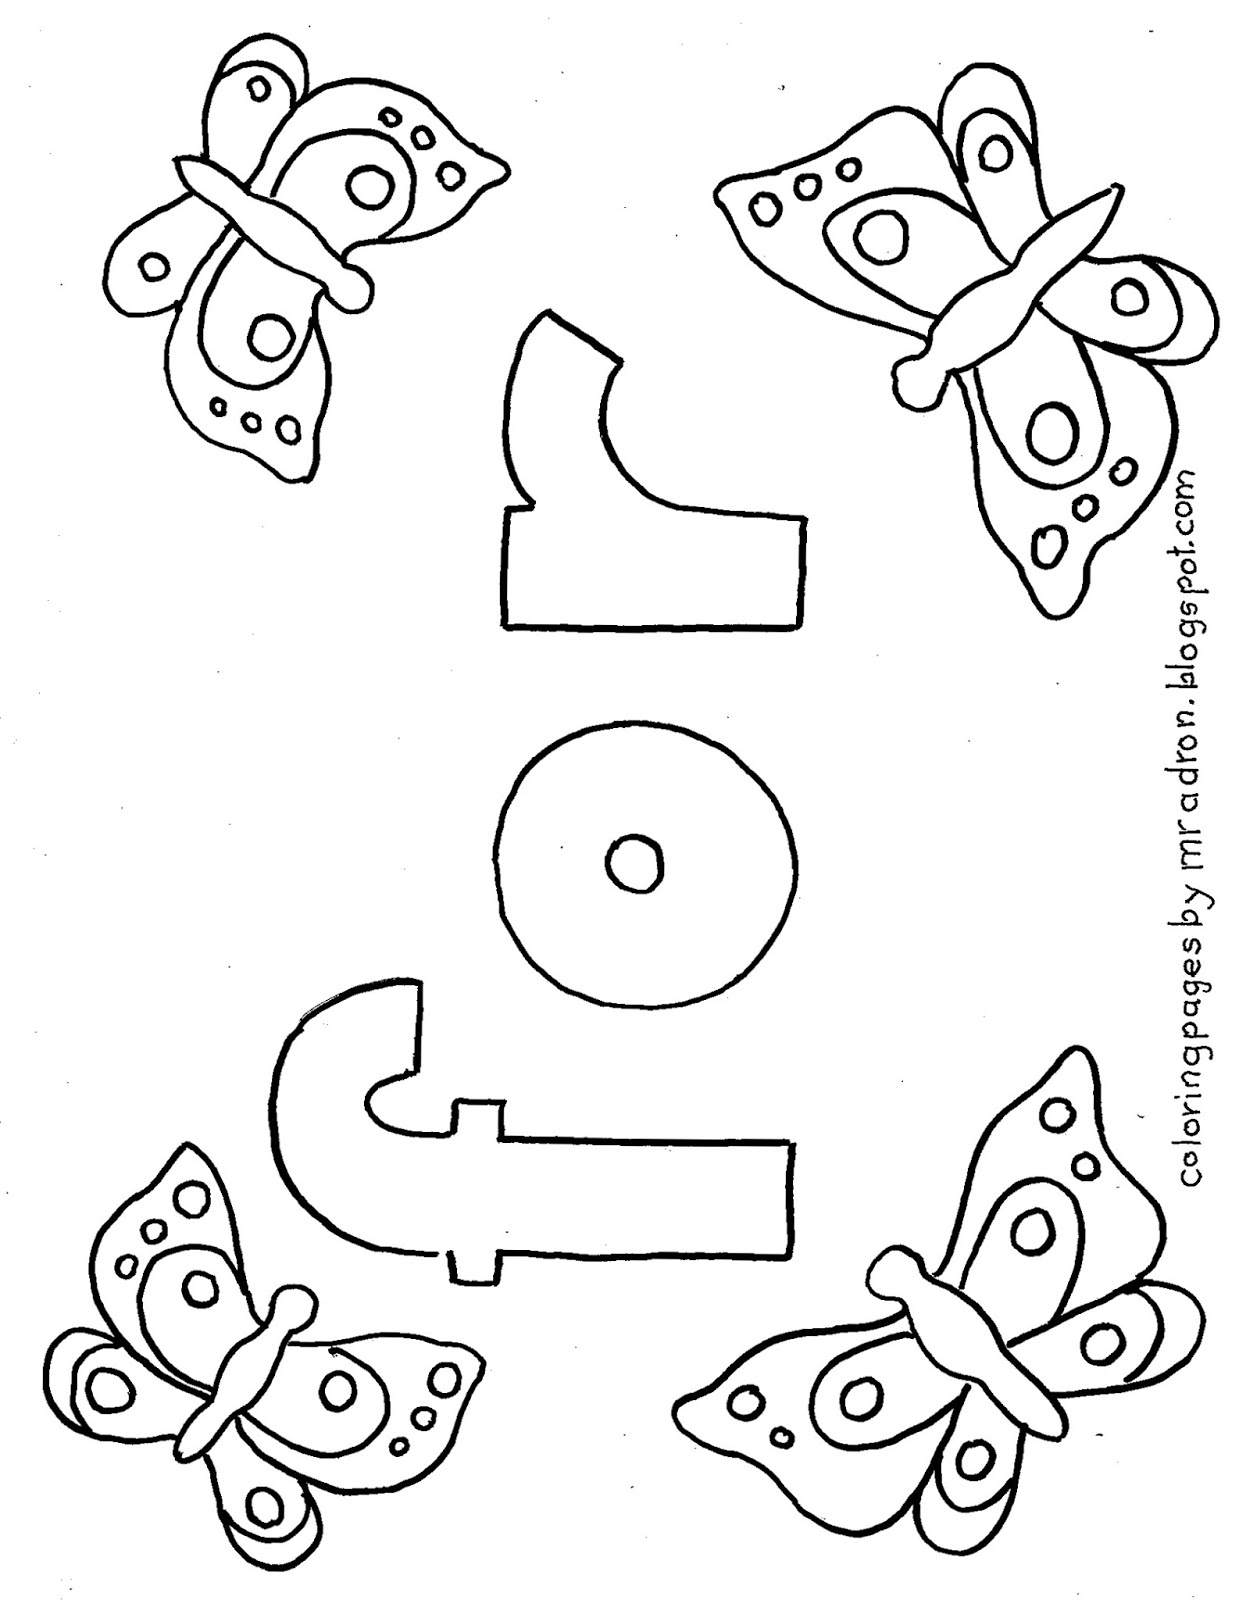 Coloring Pages for Kids by Mr. Adron: Printable Coloring ...